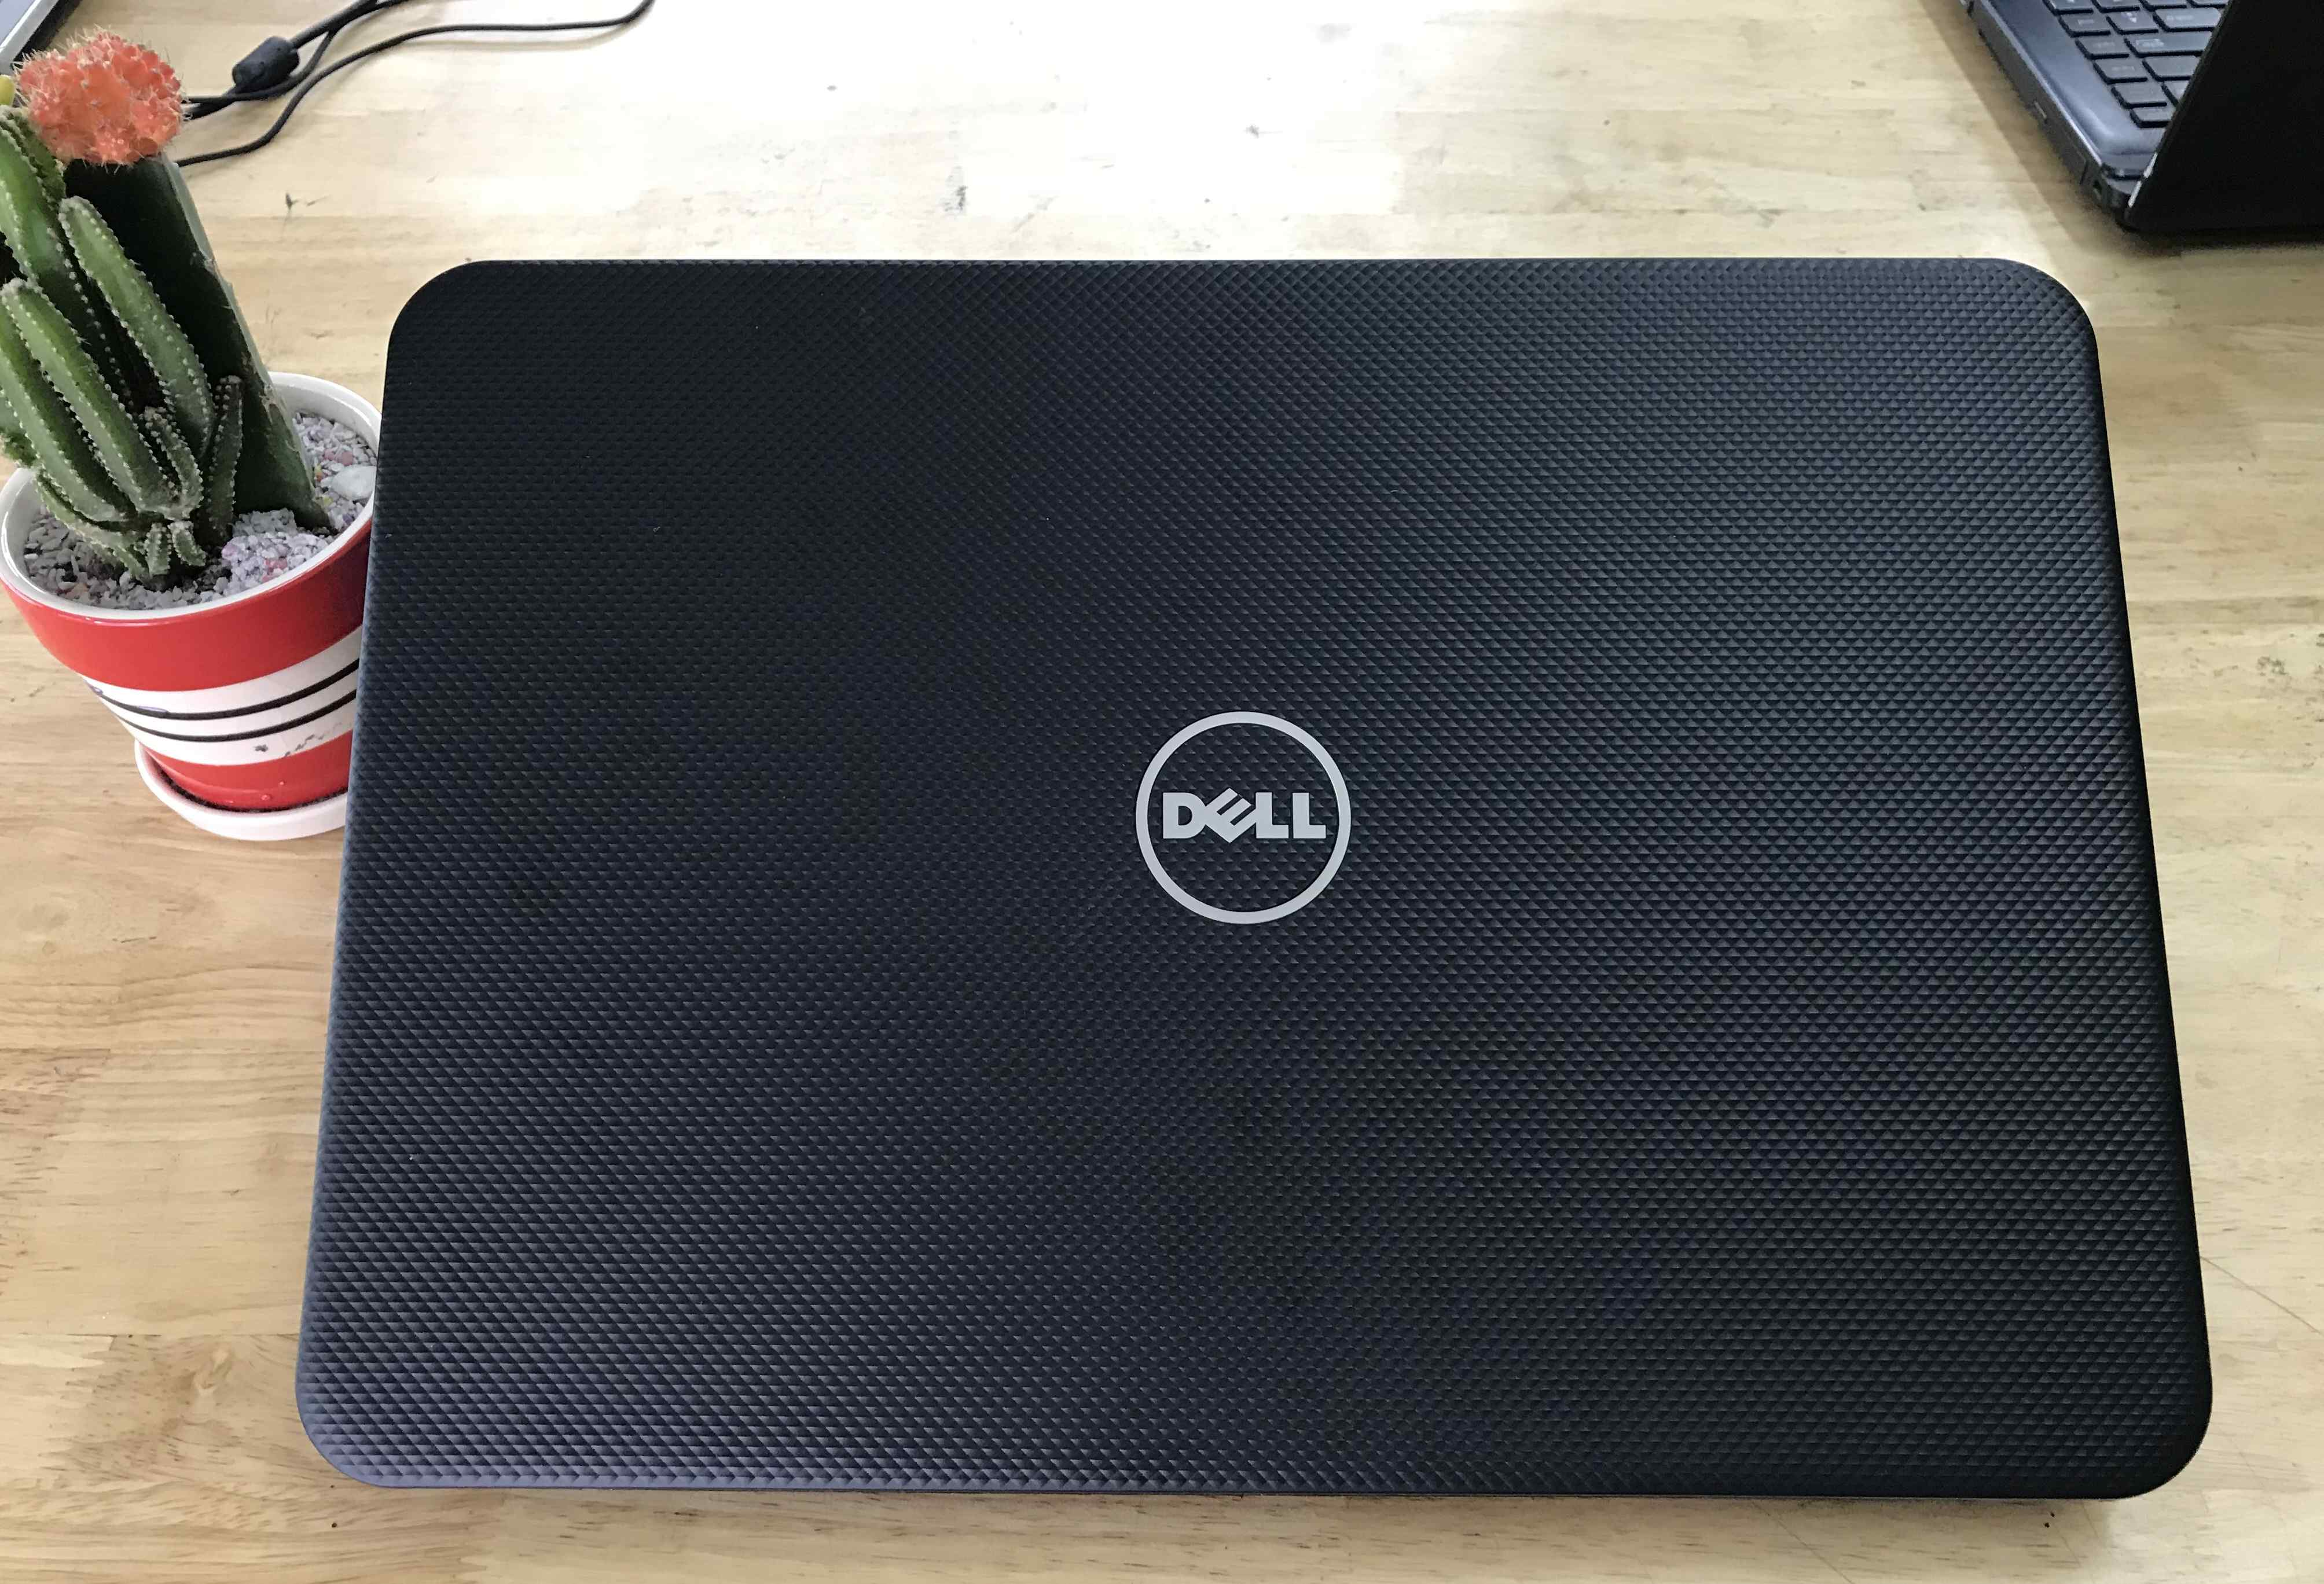 Bán laptop cũ dell inspiron 3537